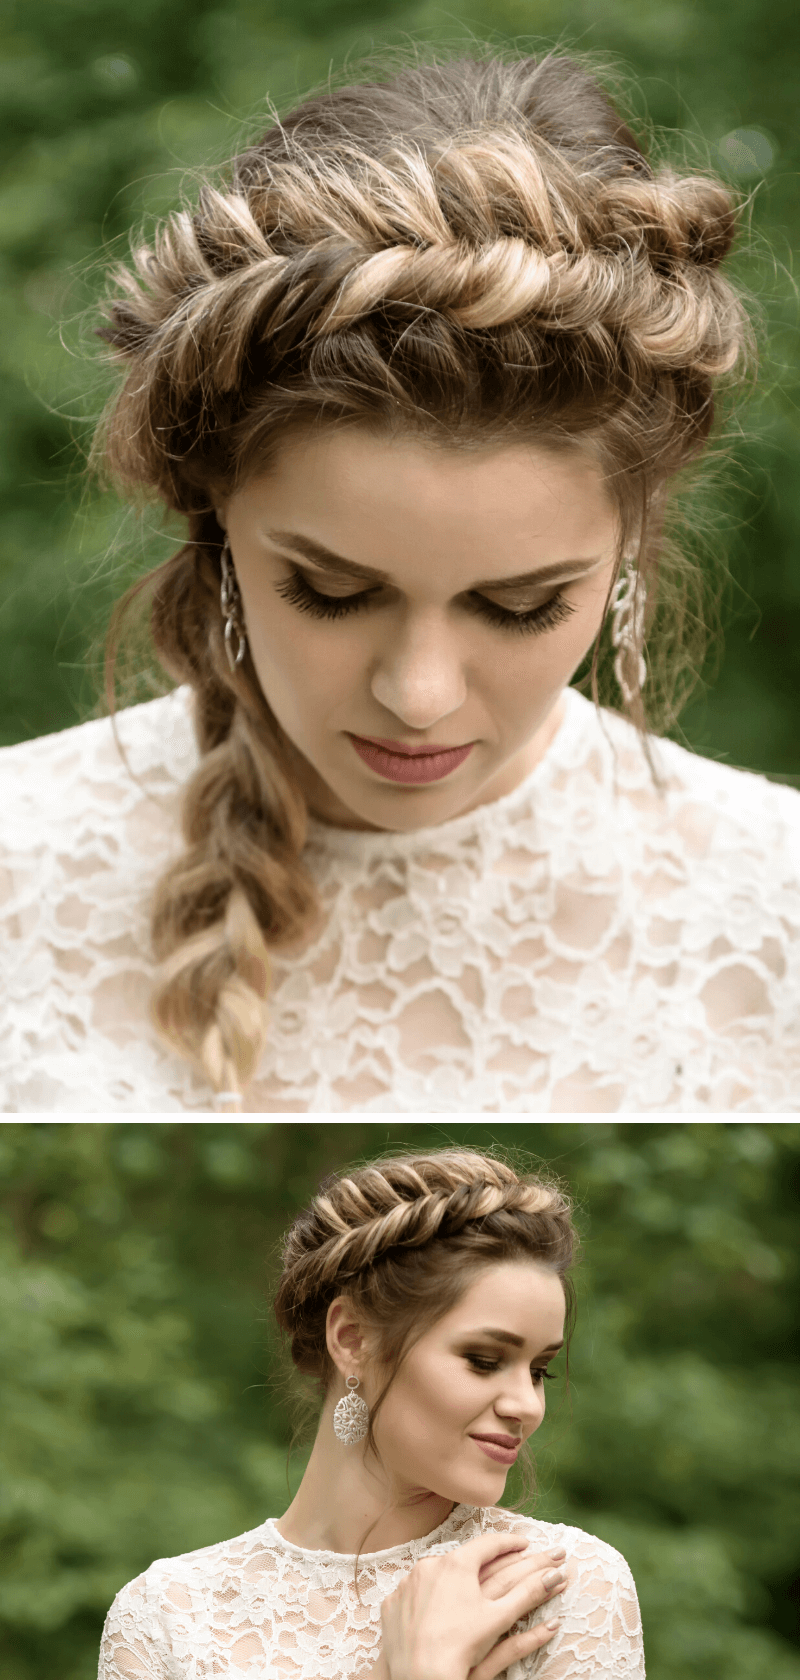 Brautfrisur Braid